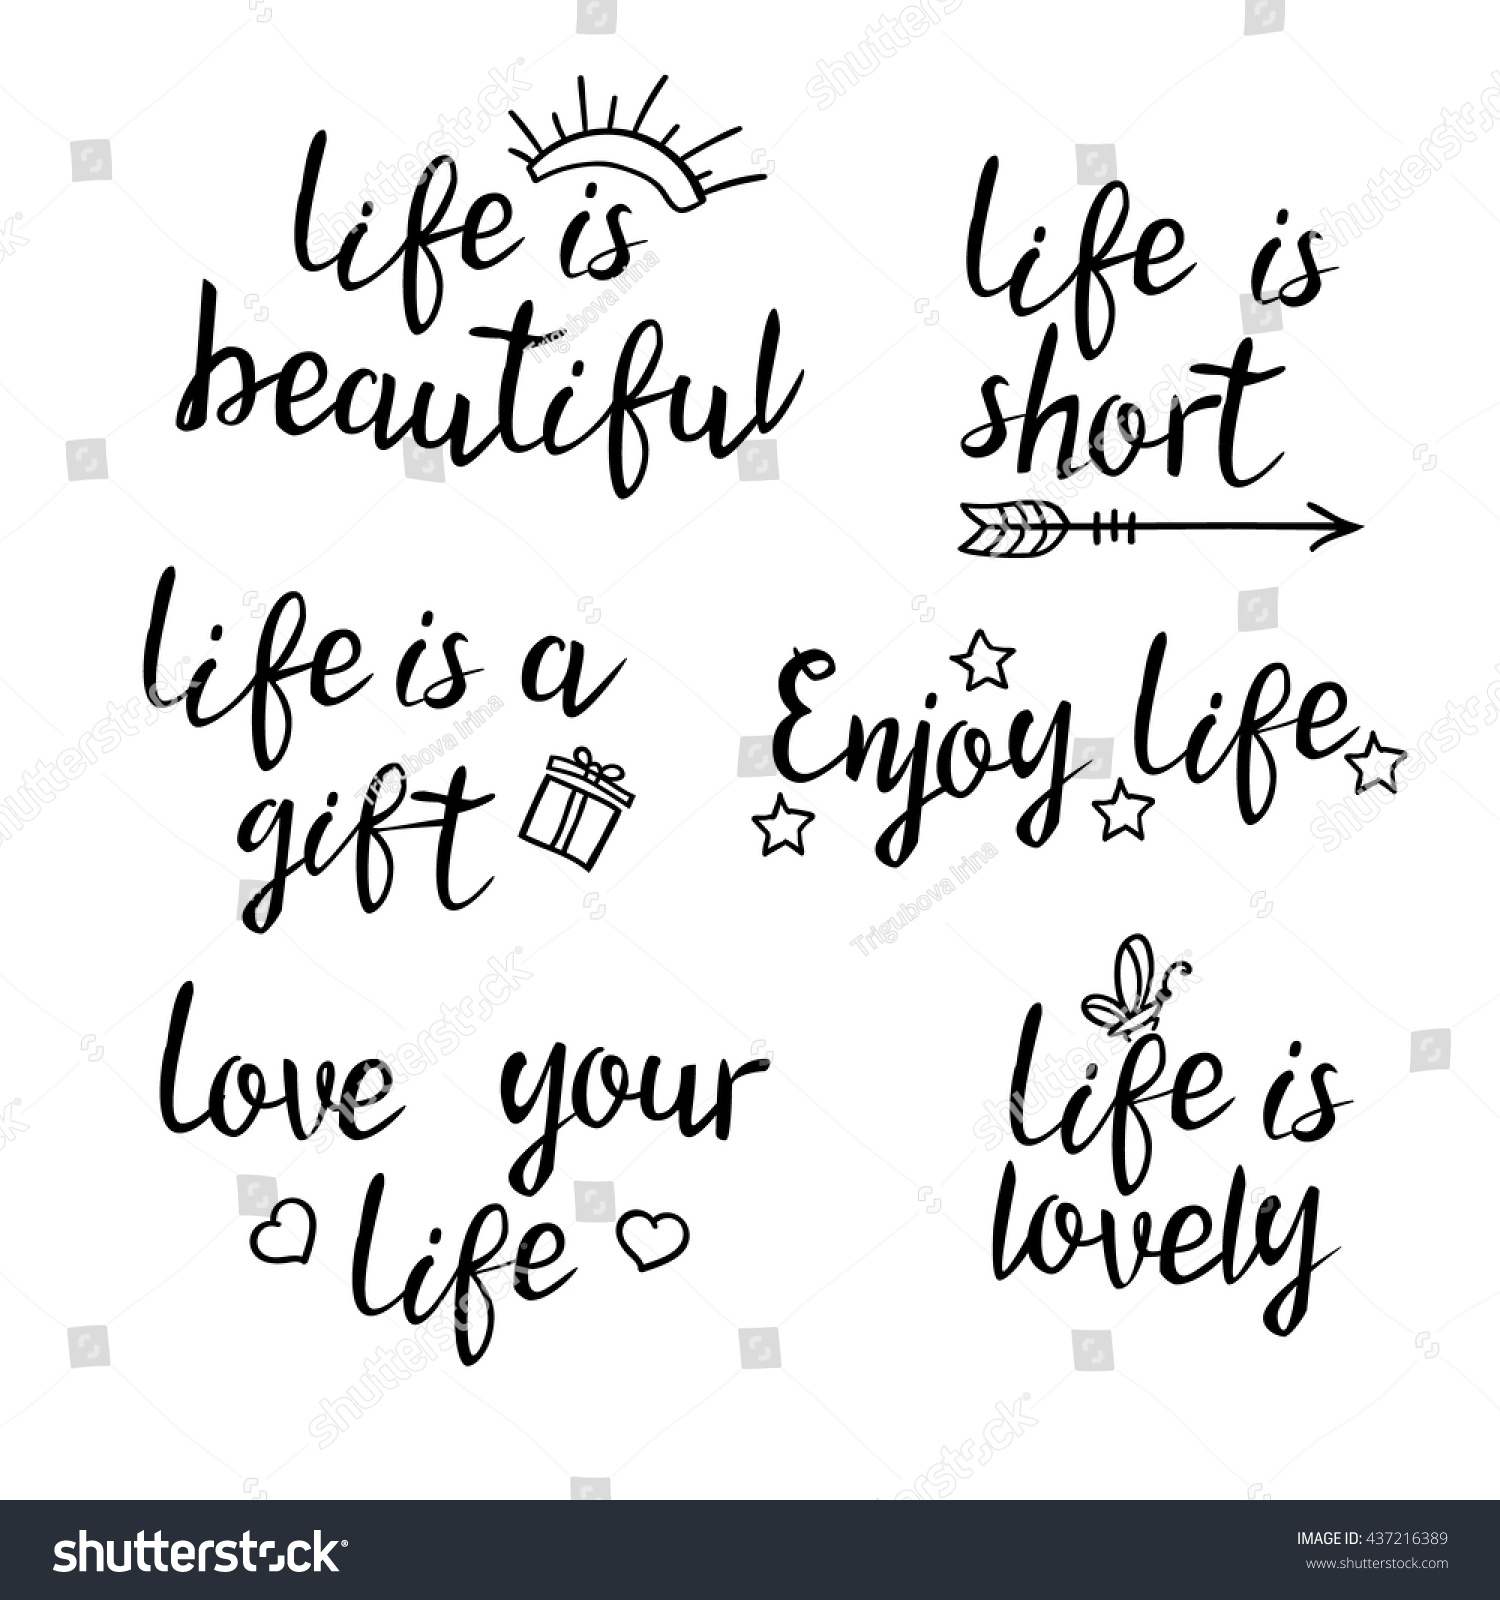 Life Is Beautiful Quotes Royaltyfree Lettering Life Quotescalligraphy… 437216389 Stock